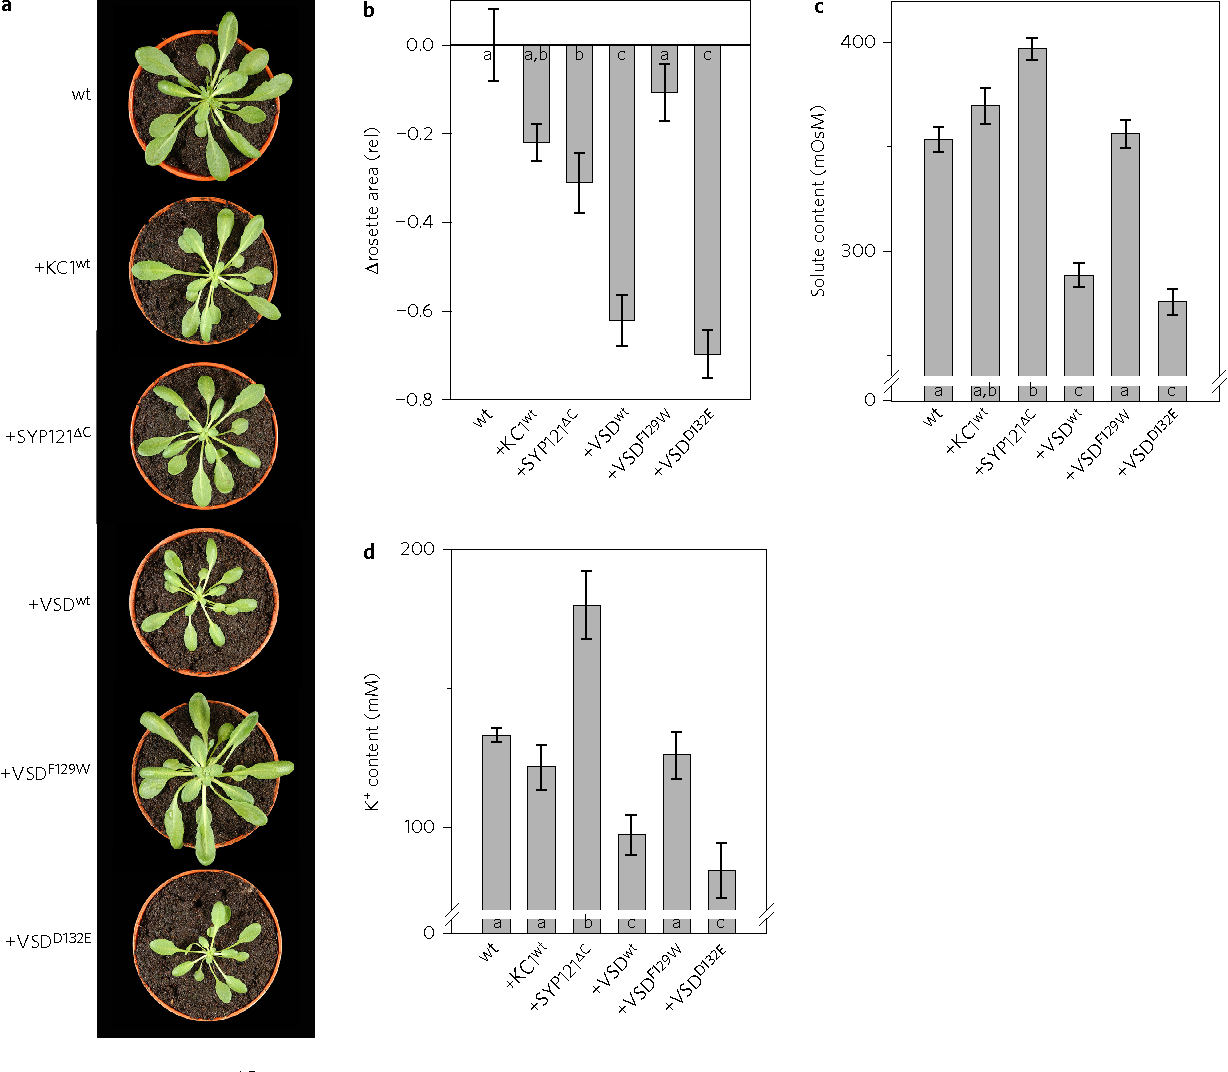 Figure 5 | KC1, its VSD, and SYP121ΔC suppress plant growth and, differentially, K+ and osmotic content. a, Vegetative rosettes of 4-week-old wild-type Arabidopsis and representative lines stably transformed to express secYFP and, on dexamethasone (Dex) induction, full-length KC1 K+ channel (KC1wt), its VSD (VSDwt), the up (closed, VSDF129W) and down (open, VSDD132E) conformers, and SYP121ΔC as a control. Plants were grown in the presence of 10 μM dexamethasone (Dex) and expression was verified by immunoblot (Fig. 4). Plants of the same lines grown in parallel −Dex were indistinguishable from the wild-type. b, Mean rosette surface areas for each set of three lines grown with 10 μM Dex normalized to mean areas for the lines grown −Dex. Data are